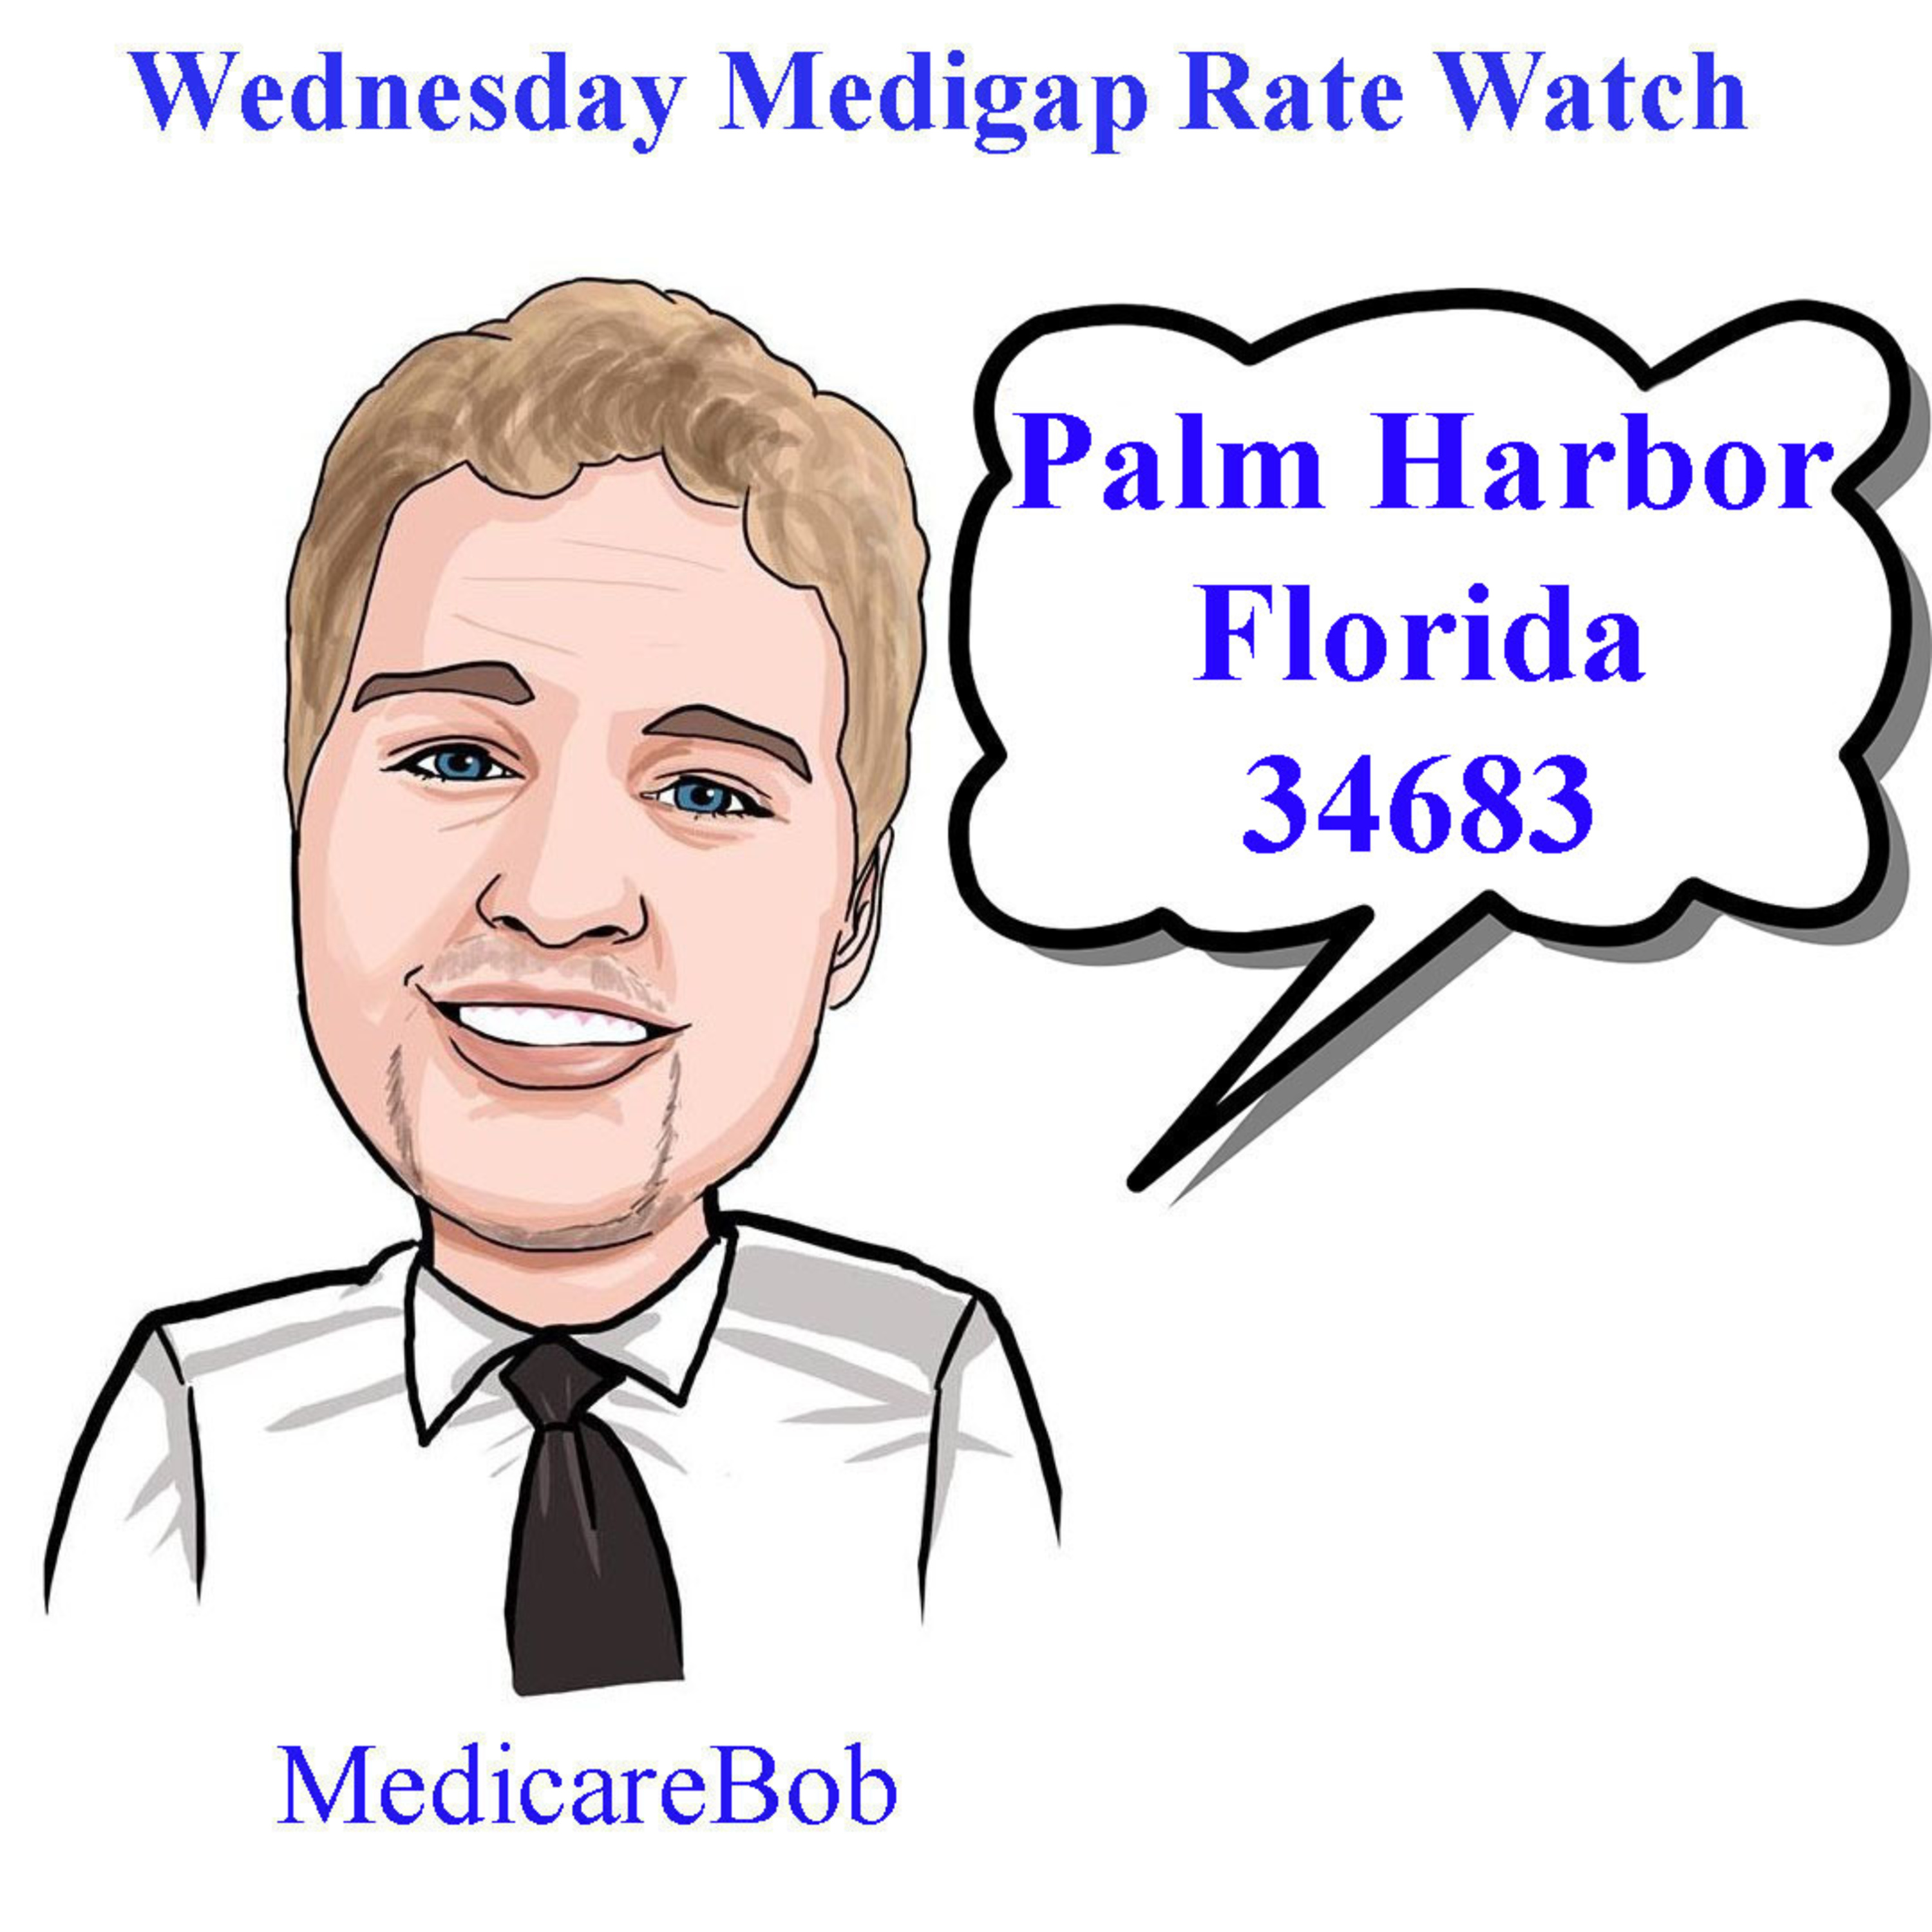 Rate Watch Wednesday: Palm Harbor, Florida 34683